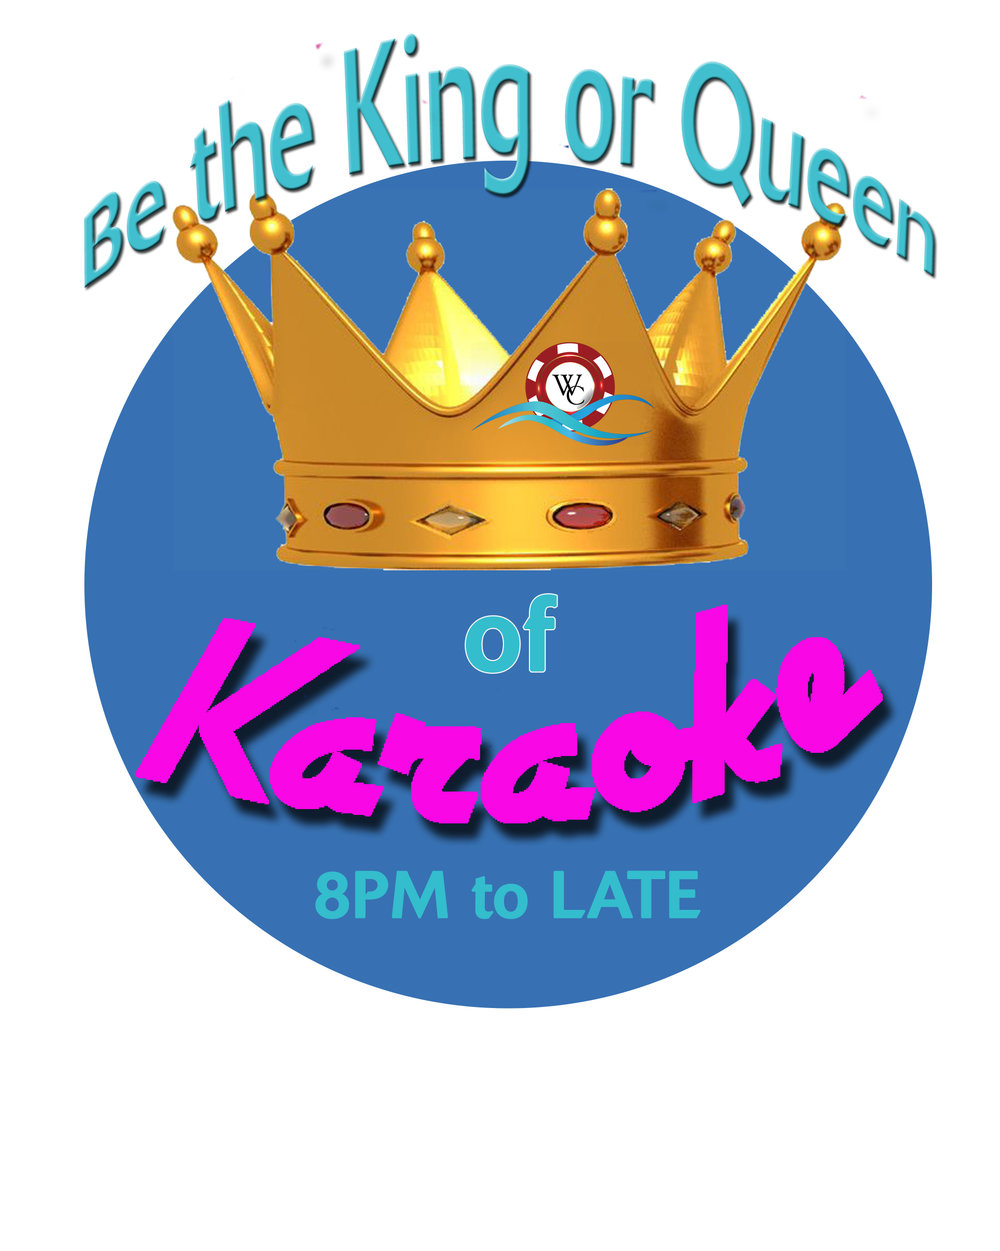 Be the King or Queen of Karaoke! Every Wednesday at The Keys- Port of $ale Mall.  8PM to LATE. NO COVER CHARGE.